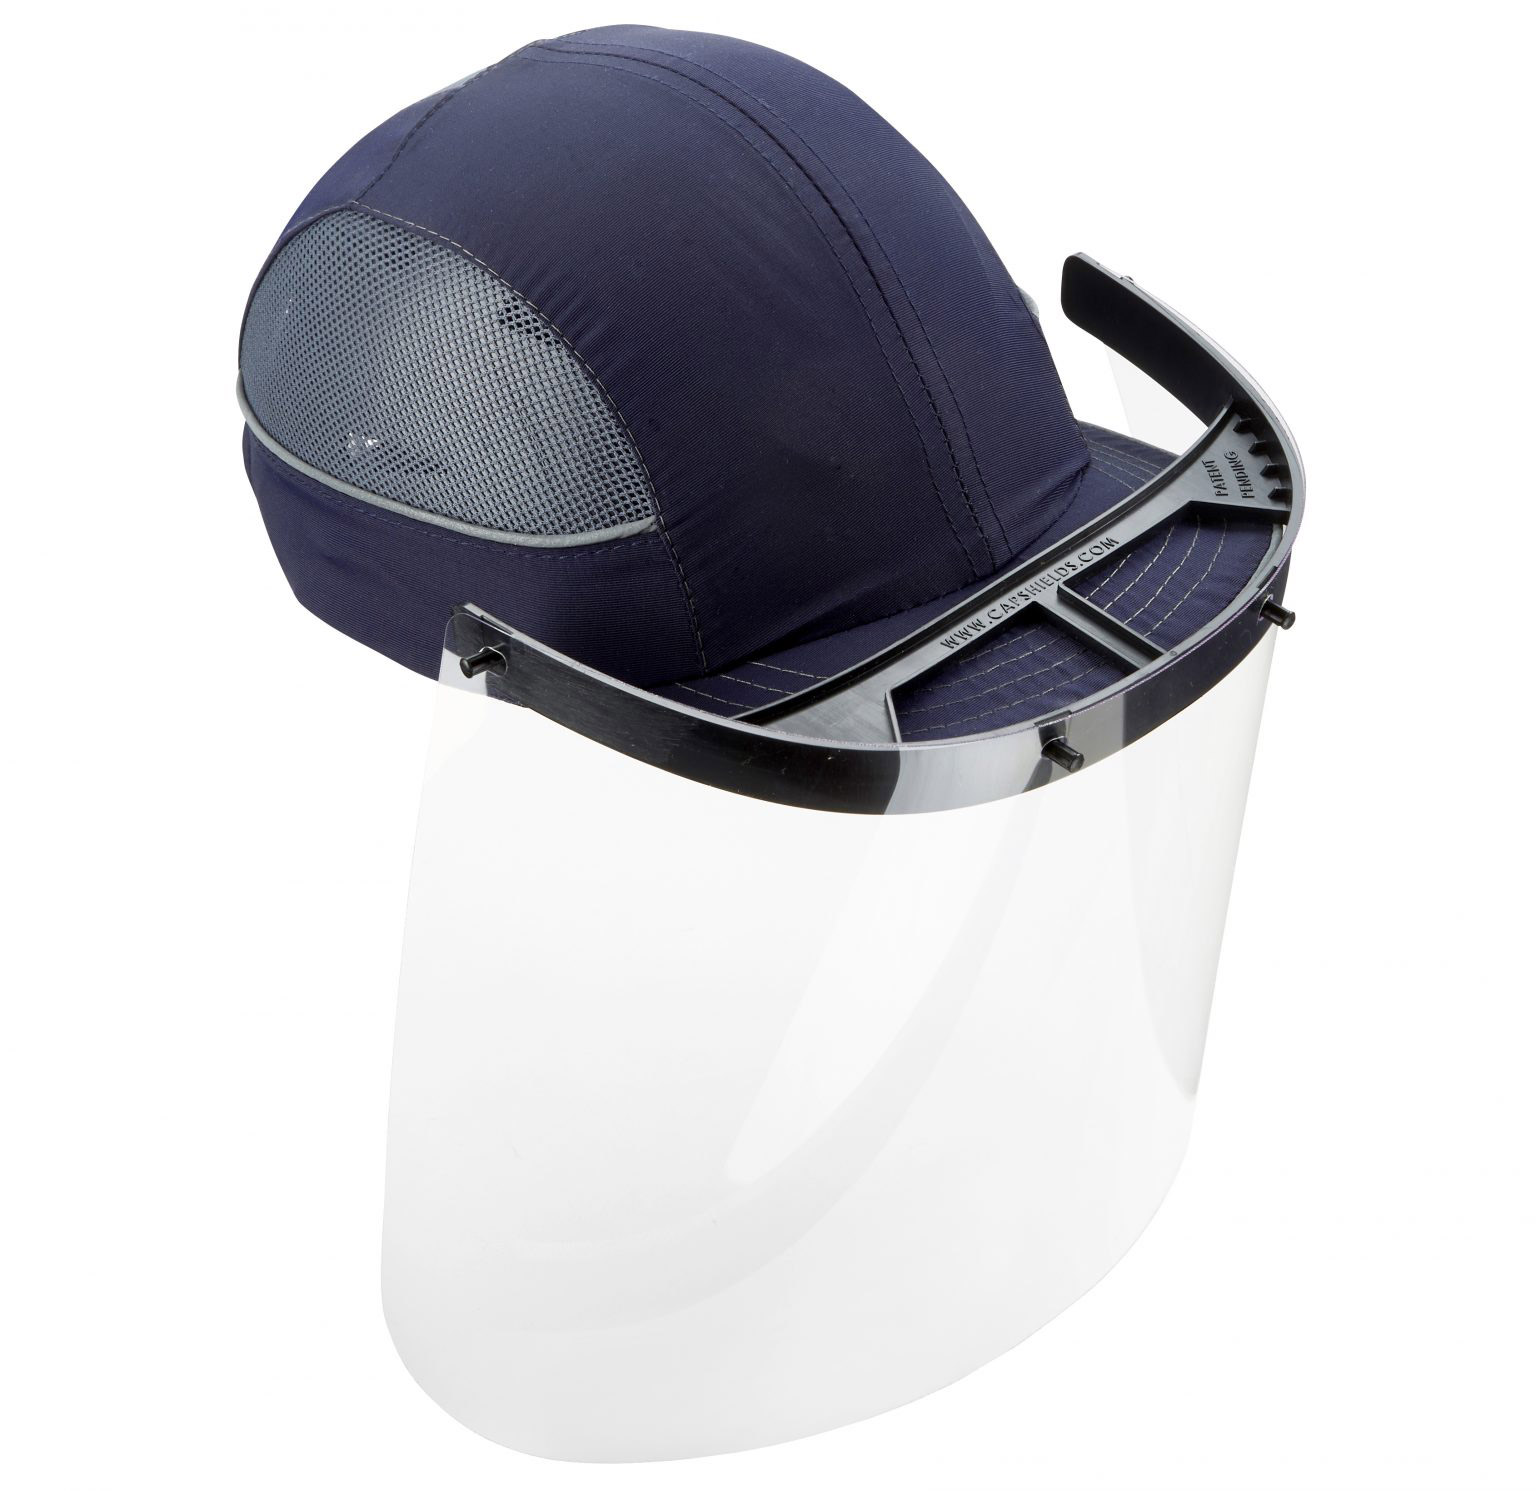 Insight from AARP on wearing Face Shields